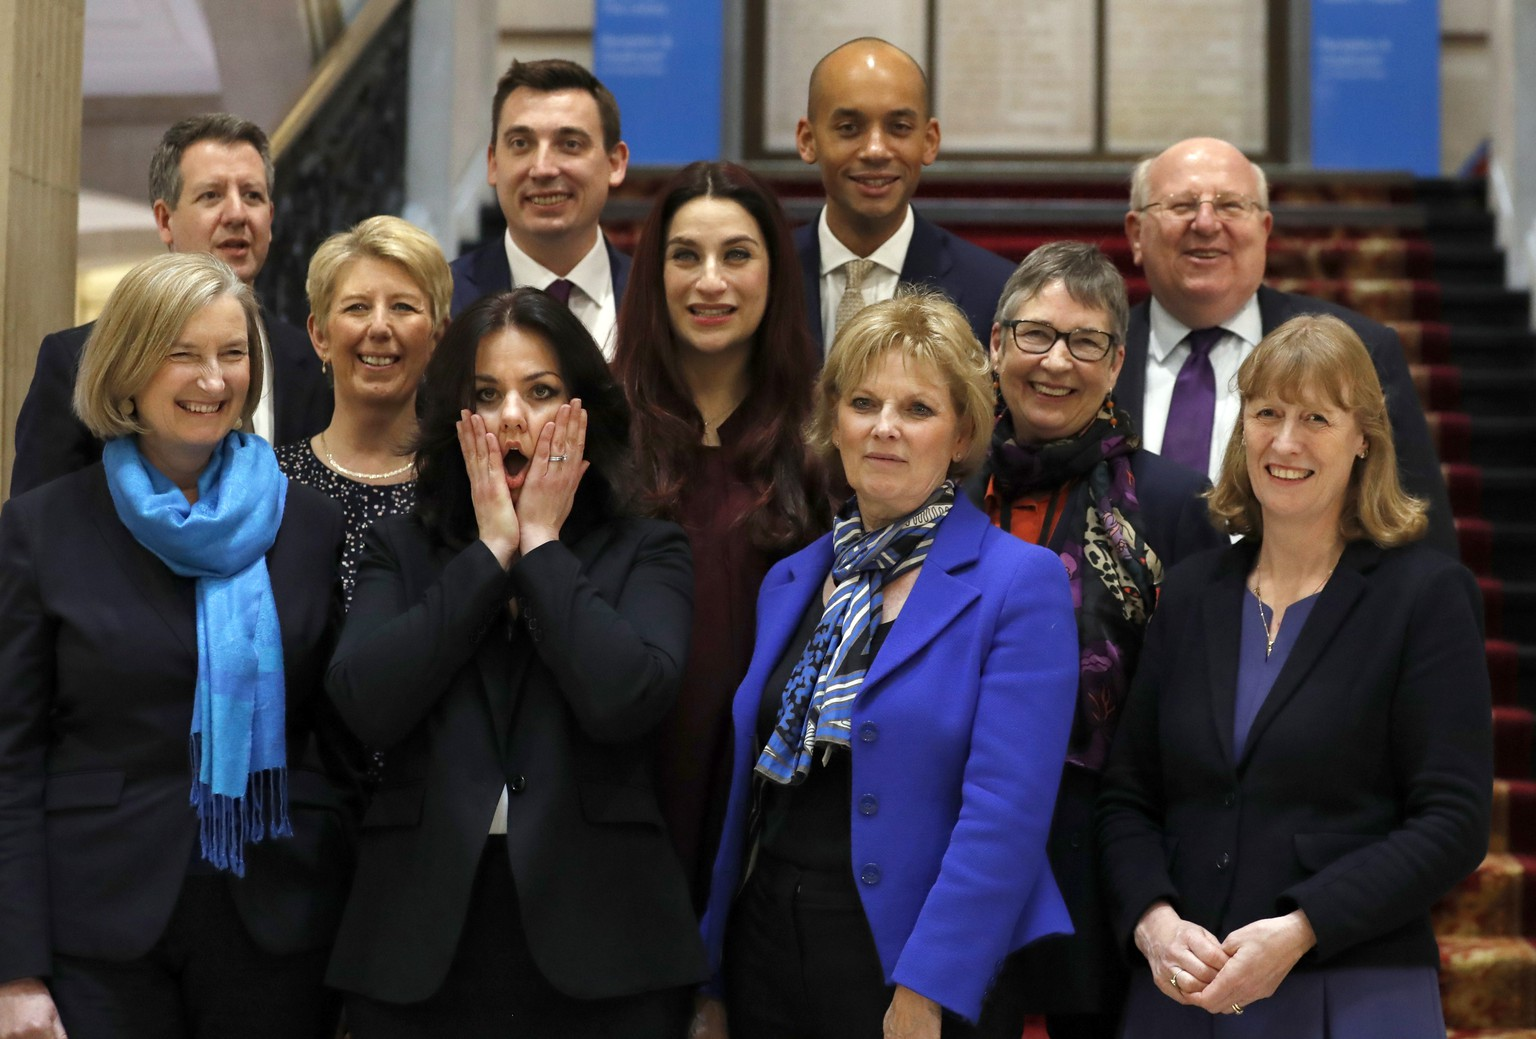 Eleven British lawmakers who have joined new political party 'The Independent Group' pose for a photograph after a press conference in Westminster in London, Wednesday, Feb. 20, 2019. Cracks in Britain's political party system yawned wider Wednesday, as three pro-European lawmakers - Soubry, Allen and Wollaston - quit the governing Conservatives to join a newly formed centrist group of independents who are opposed to the government's plan for Britain's departure from the European Union. (AP Photo/Alastair Grant)